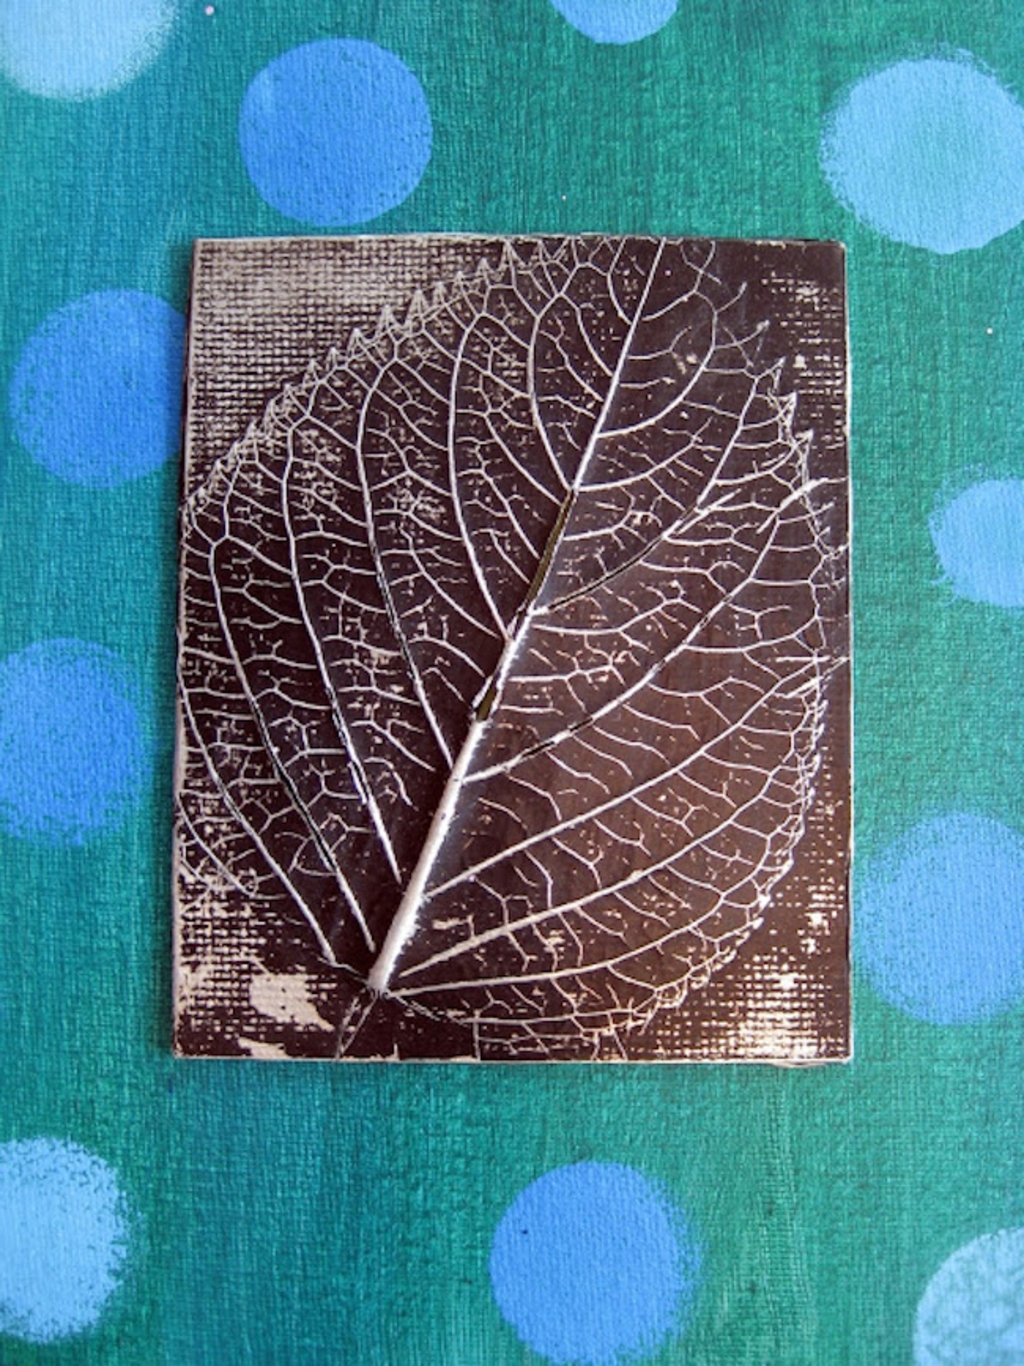 Most Popular Diy Projects: Leaf Relief Craft To Use As Wall Art – 8 Creative Inside Seasonal Wall Art (View 7 of 15)